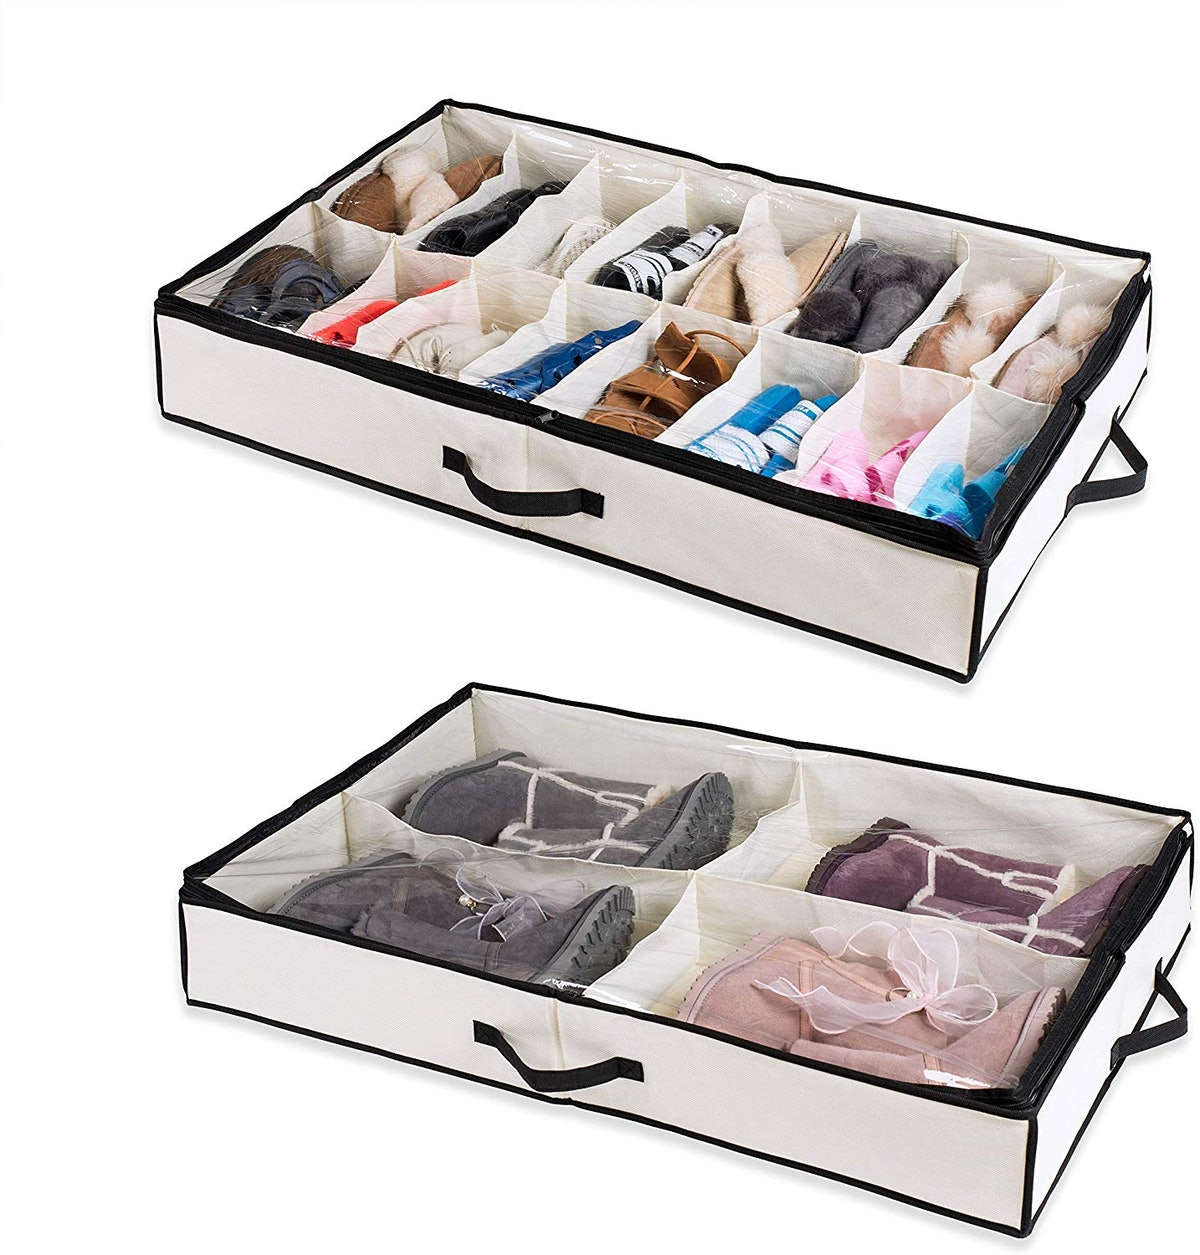 Woffit Under-The-Bed Shoe Organizer